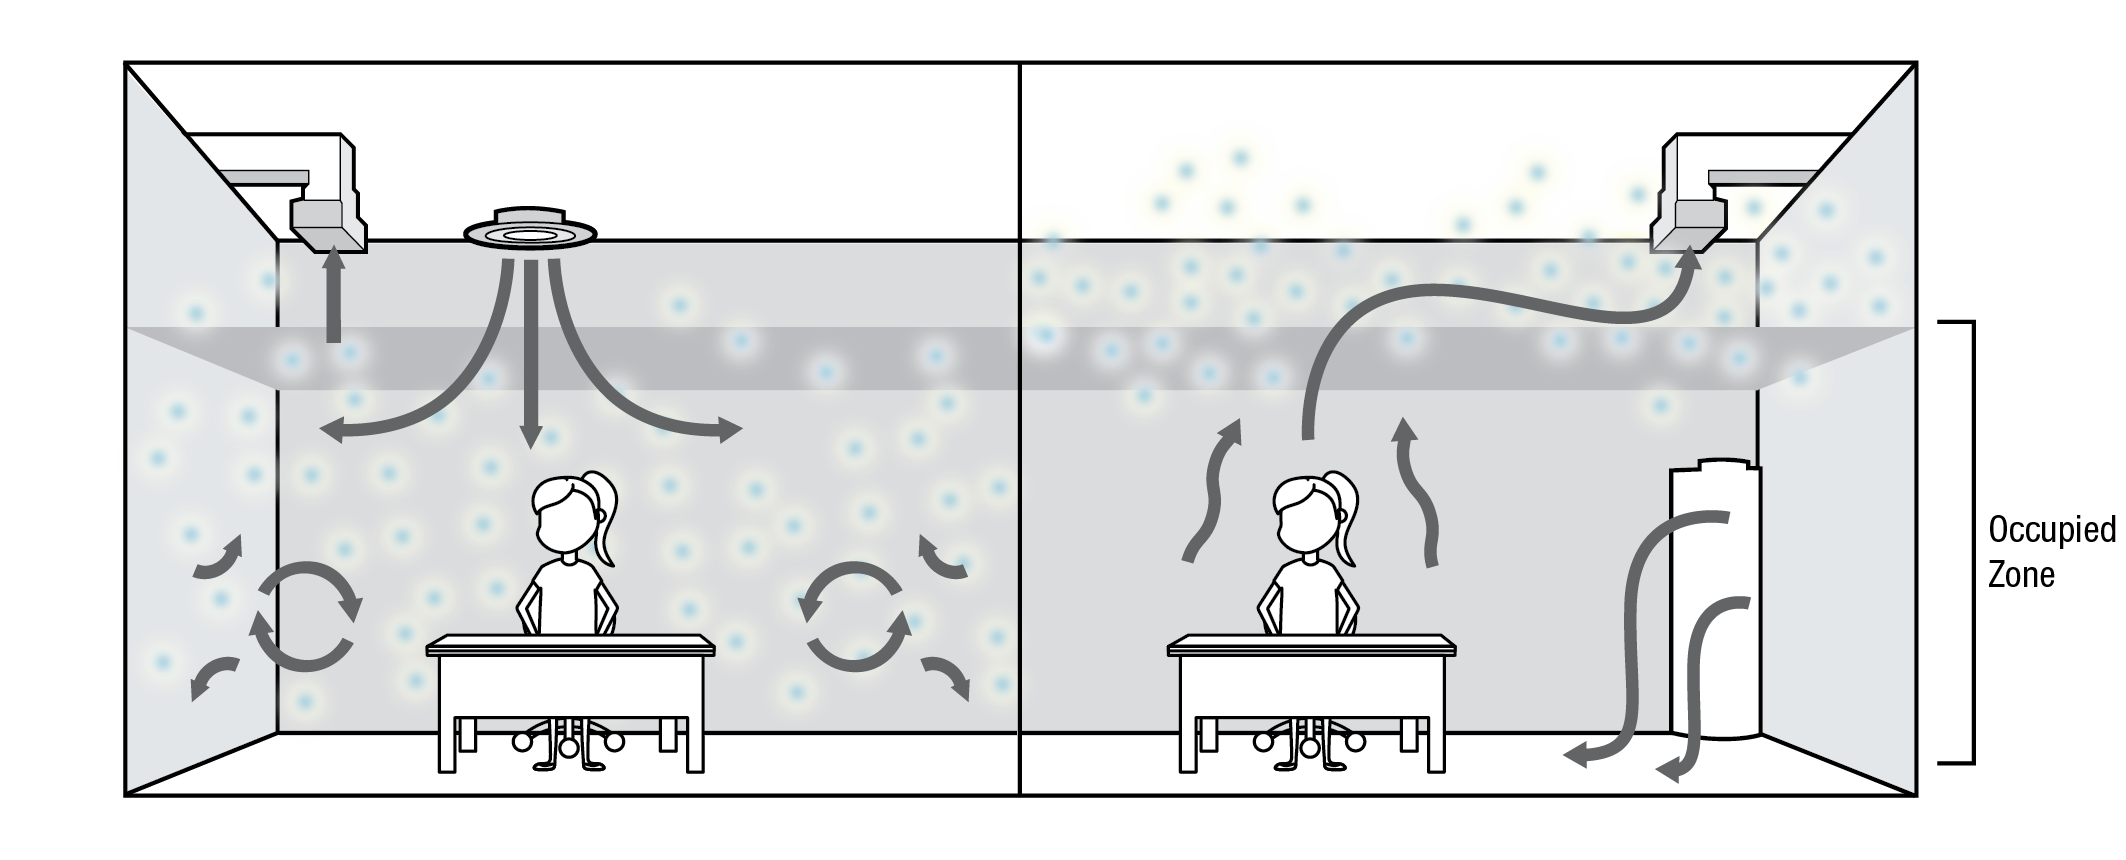 Illustration of airflow in an overhead system on the left and the displacement system on the right